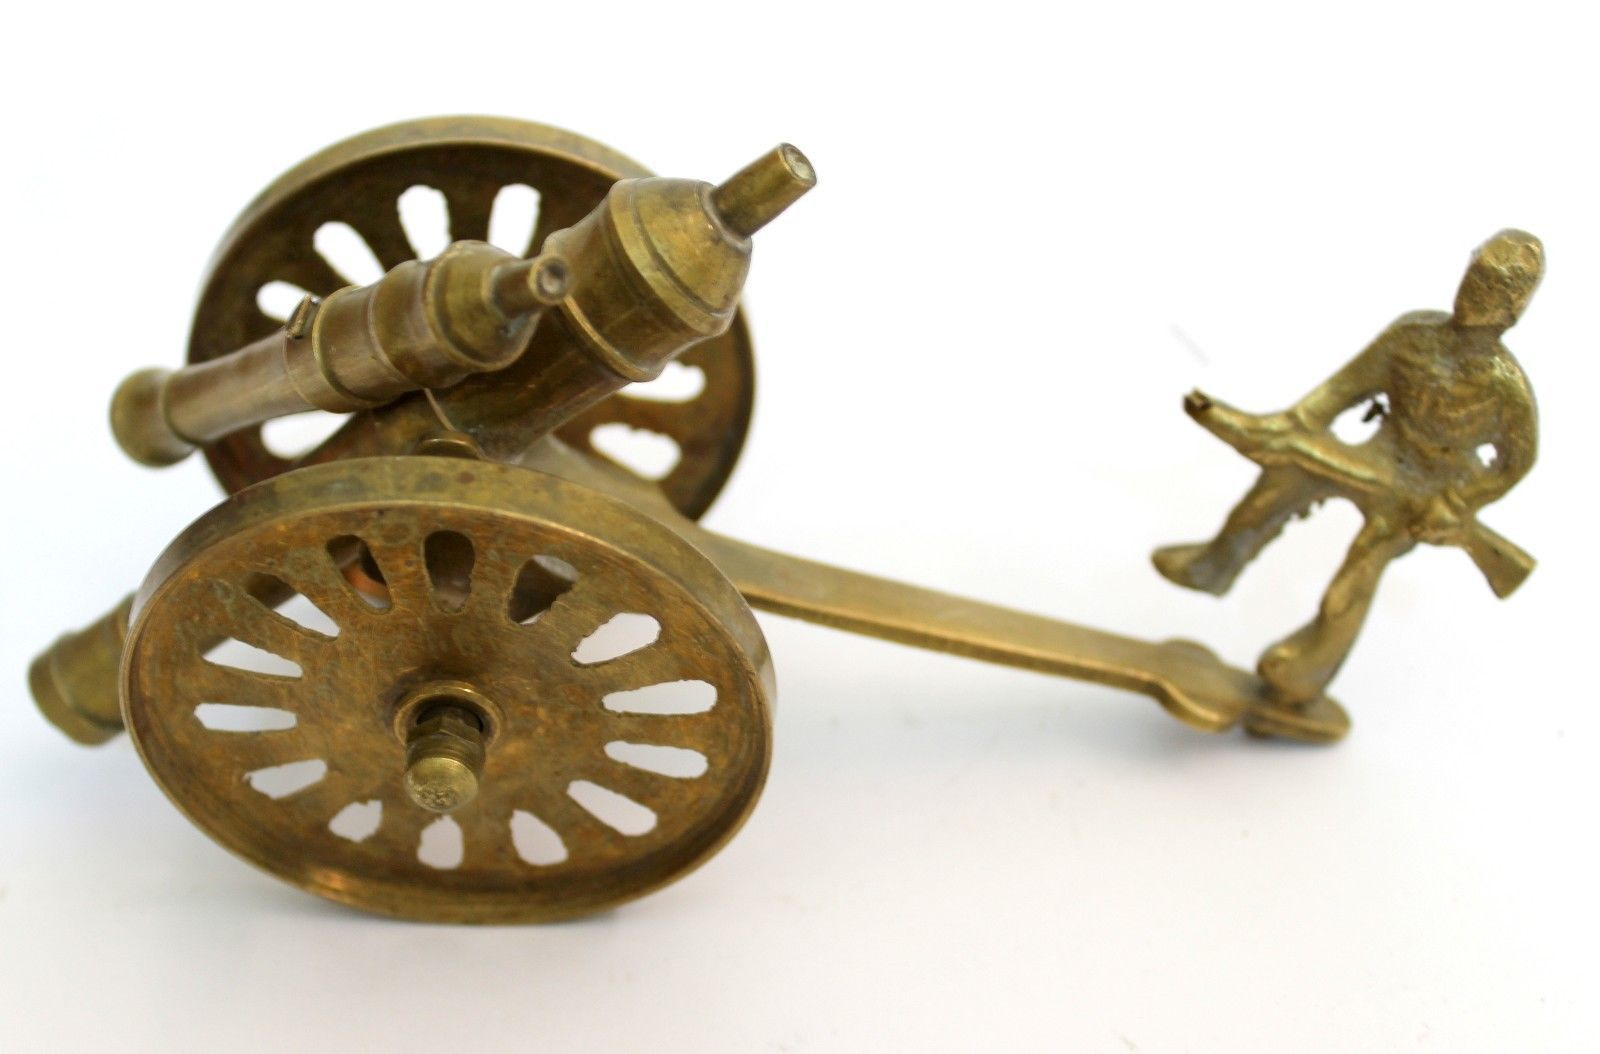 Antique tope collectible decorative item for showpiece collection brass made.